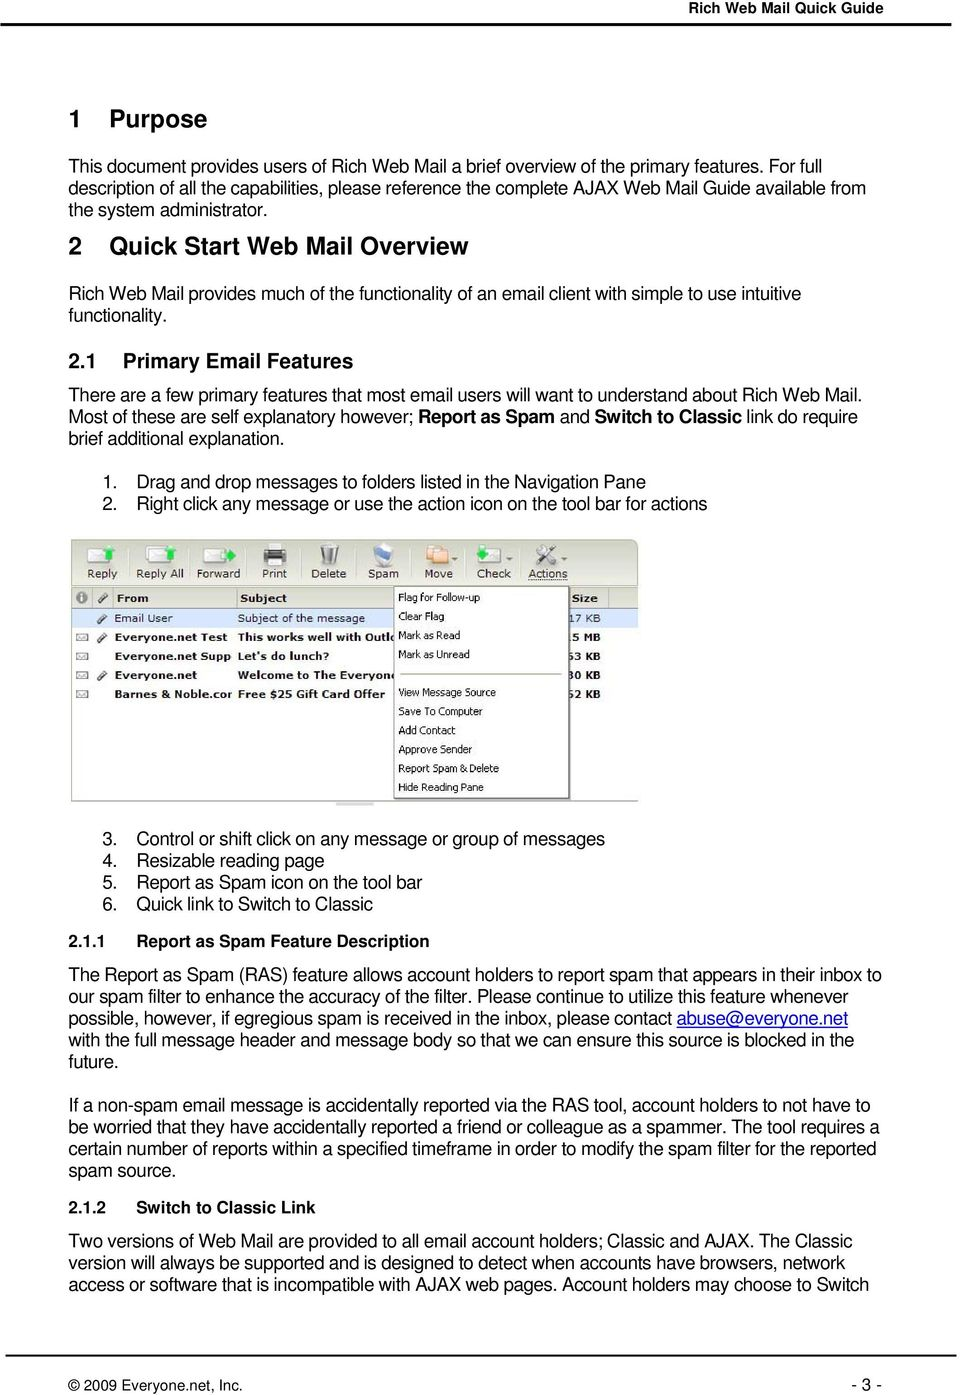 2 Quick Start Web Mail Overview Rich Web Mail provides much of the functionality of an email client with simple to use intuitive functionality. 2.